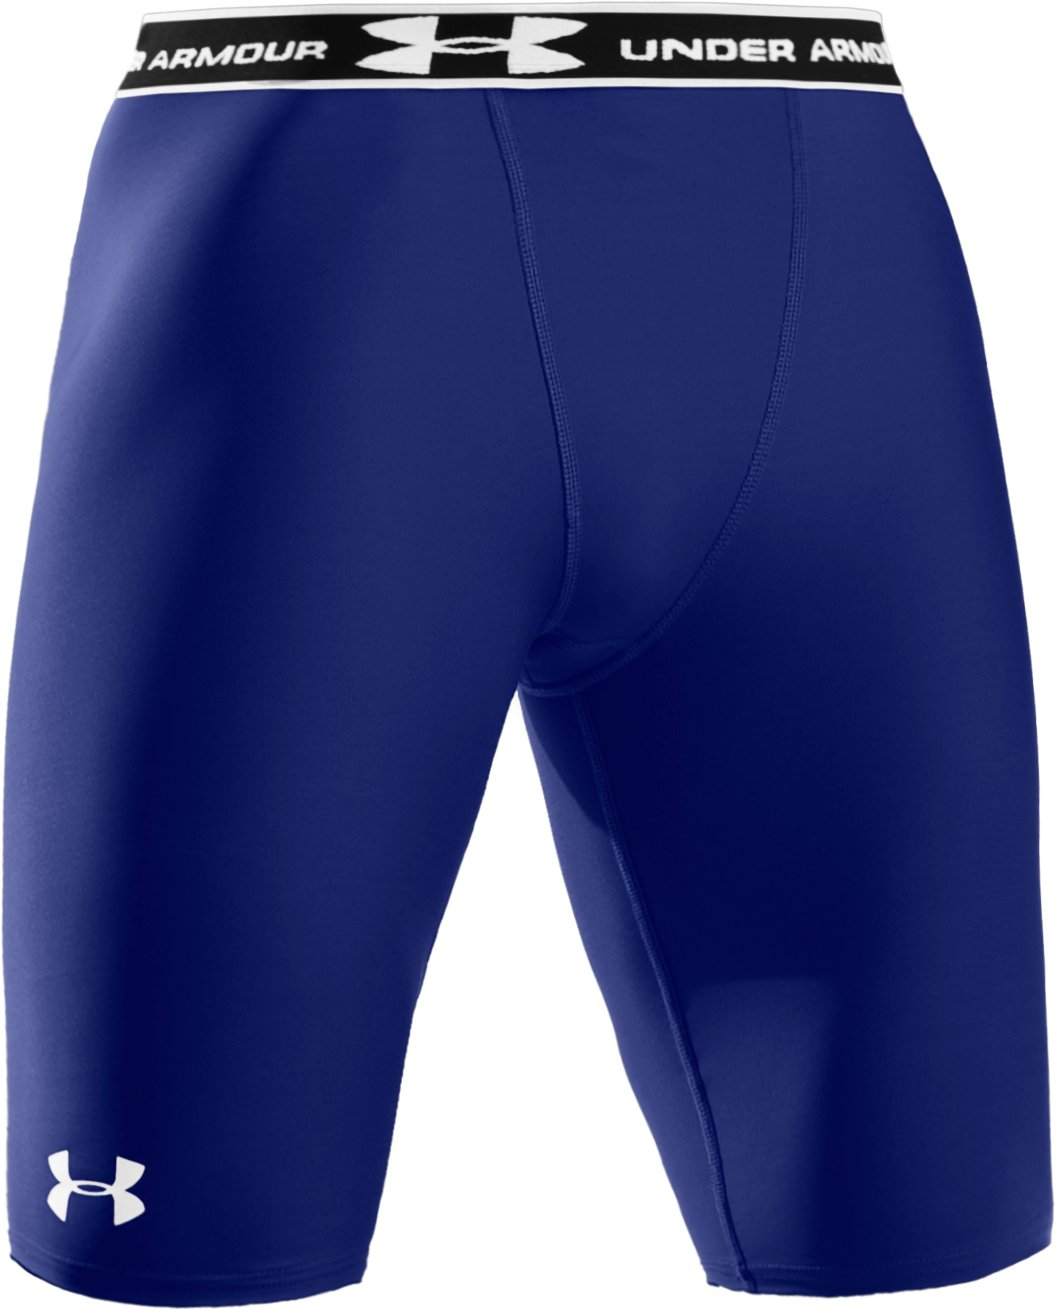 "Men's HeatGear® Compression 9"" Shorts, Royal"